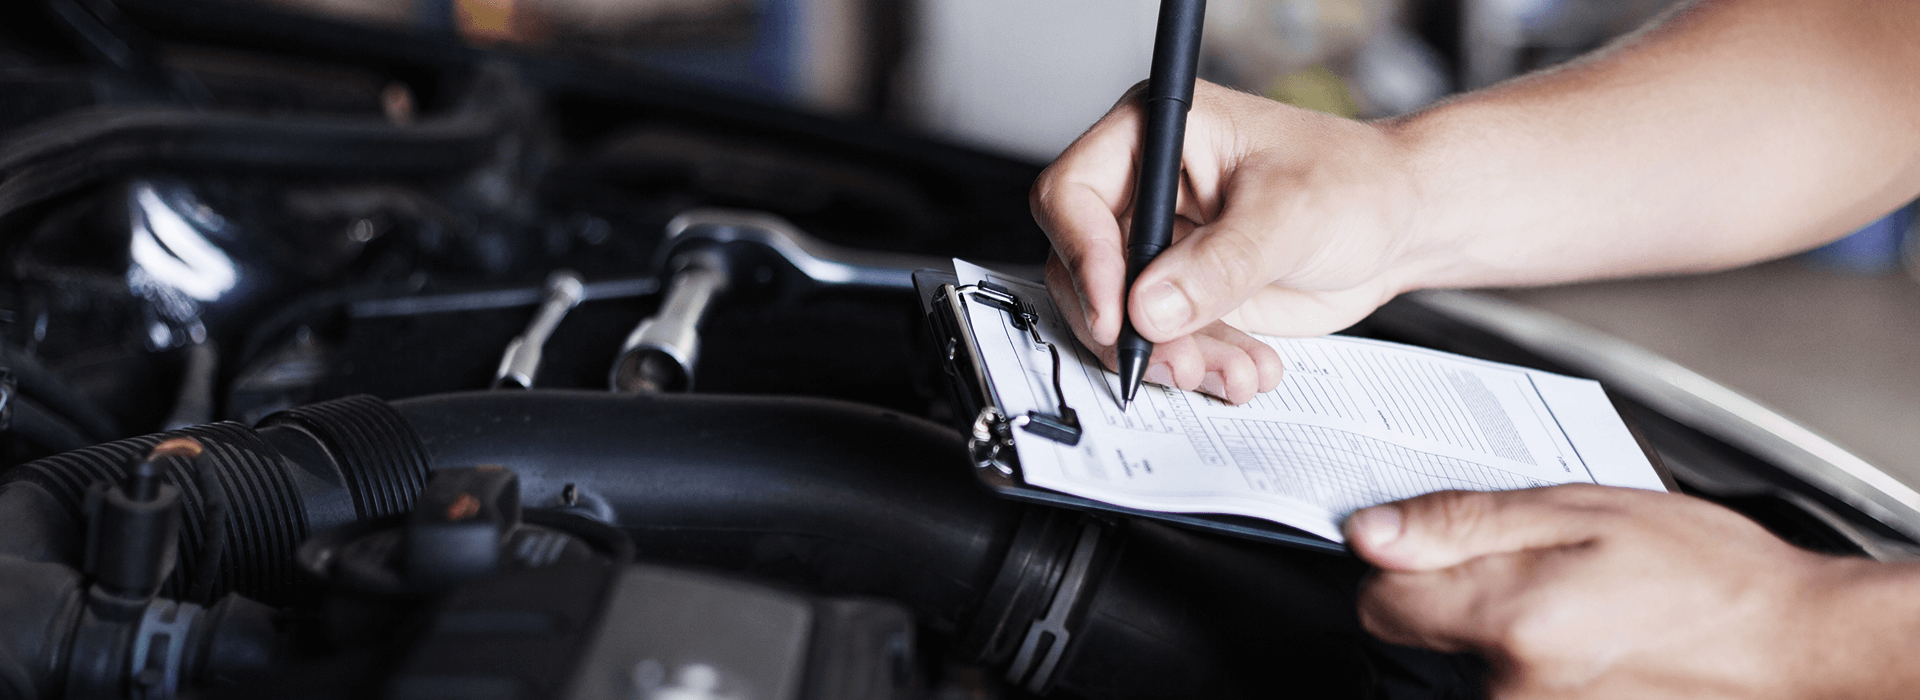 Inpependent Cars Service And Mot Hero Image